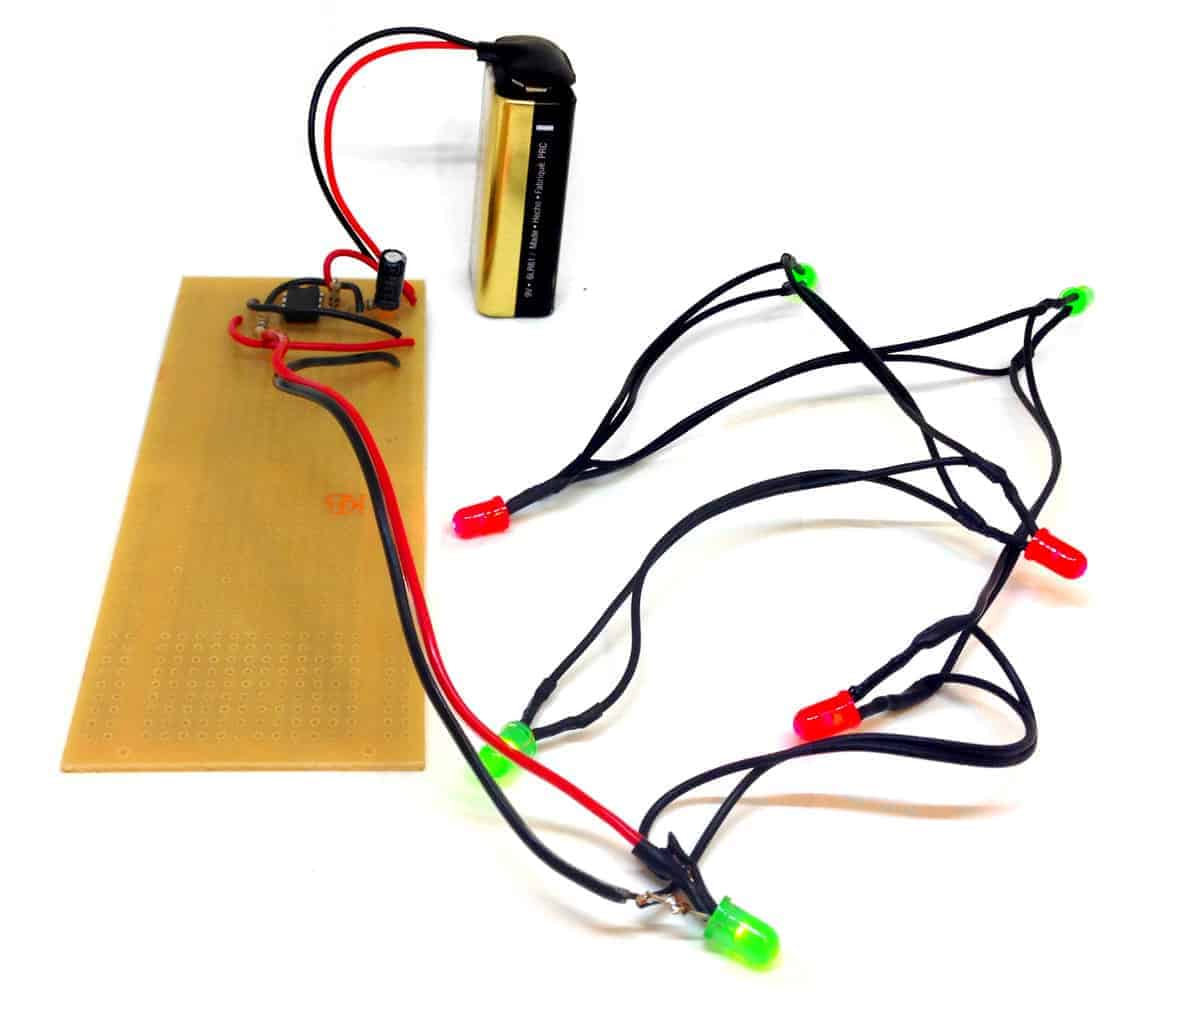 4060 Circuits likewise Light Activated Relay With 555 Ic moreover Strobe Light Wiring Diagram in addition Watch together with Cheap Led Christmas Light Flasher Circuit Is Controlled By Audio. on wiring diagram for flashing led lights